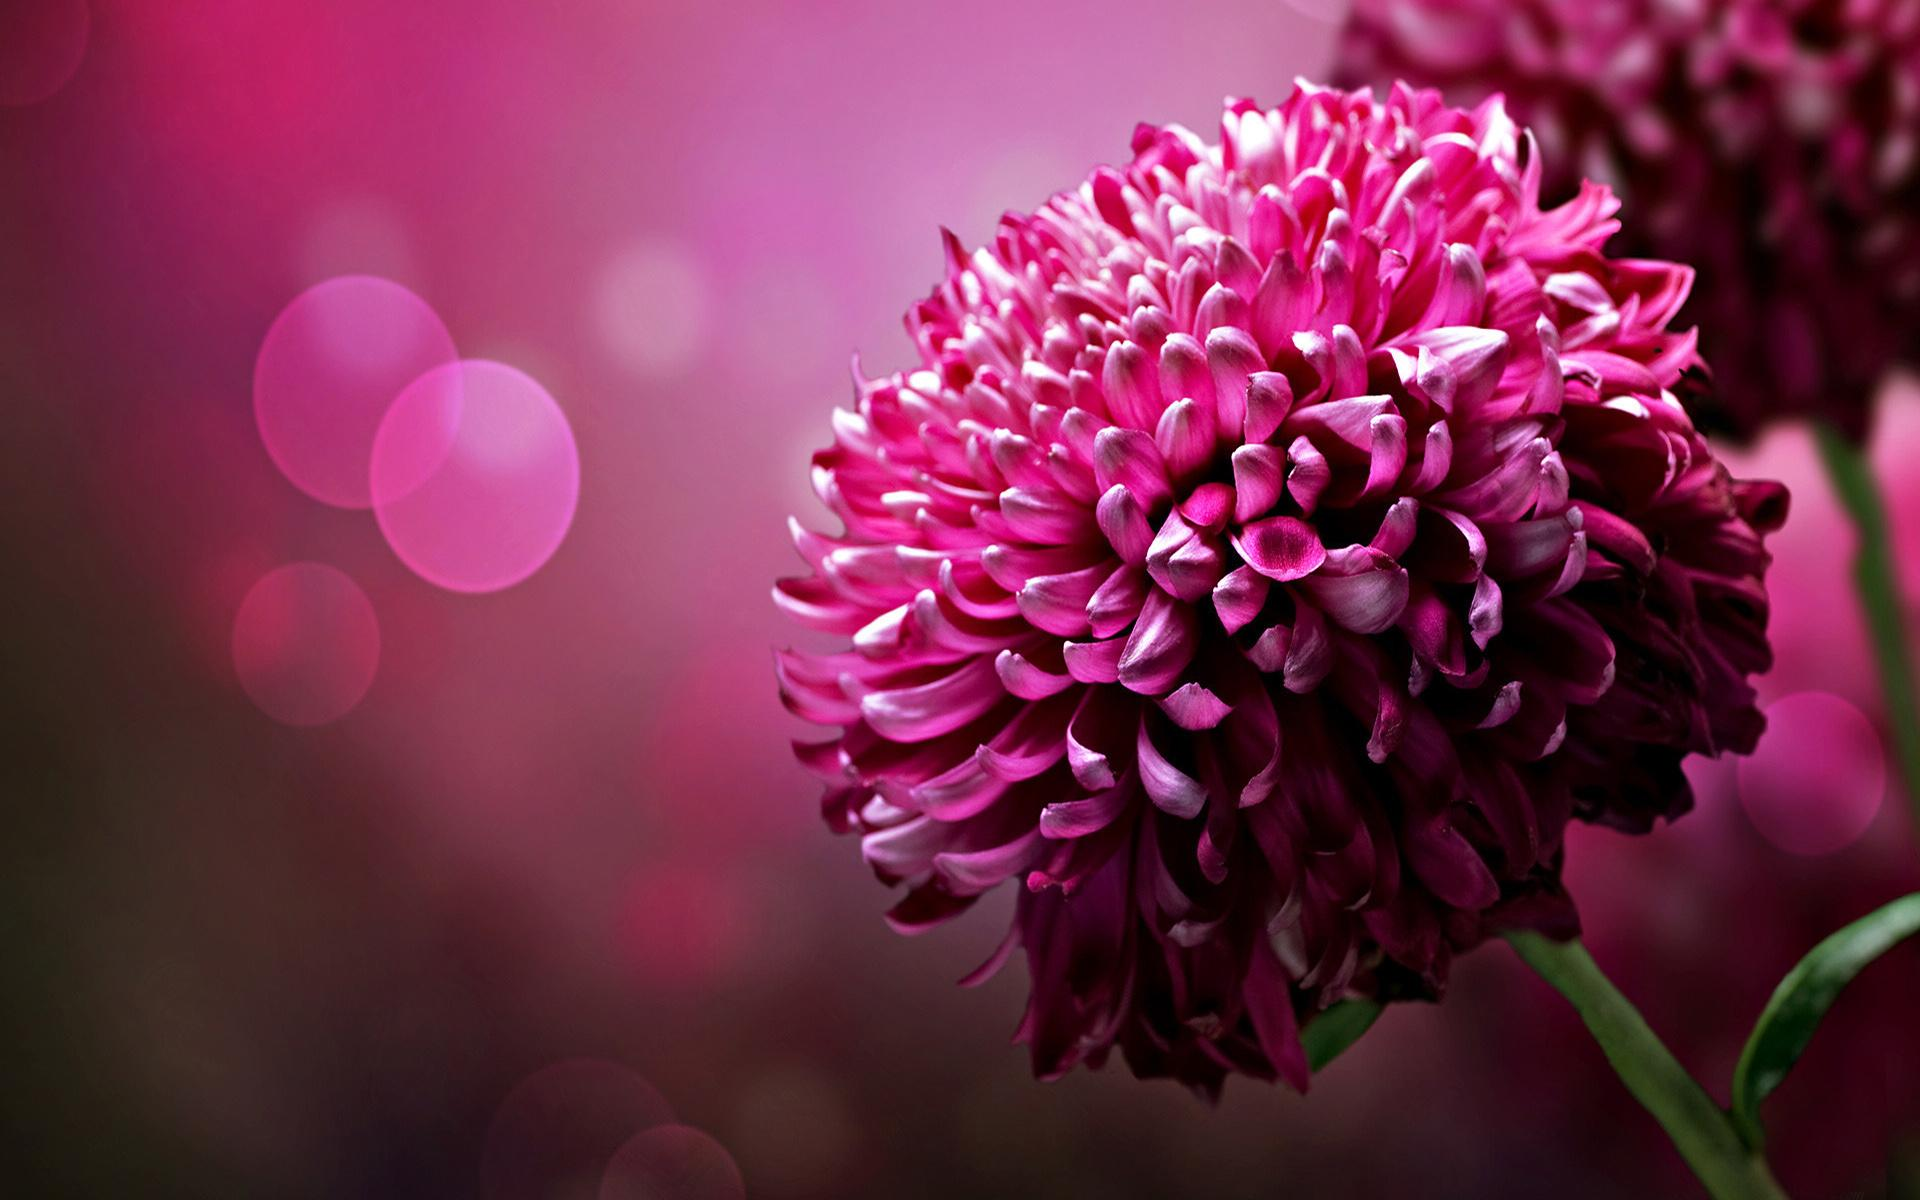 Desktop Wallpaper: Purple Chrysanthemum Flowers Desktop Wallpaper Hd Free Xpx 1920x1200px